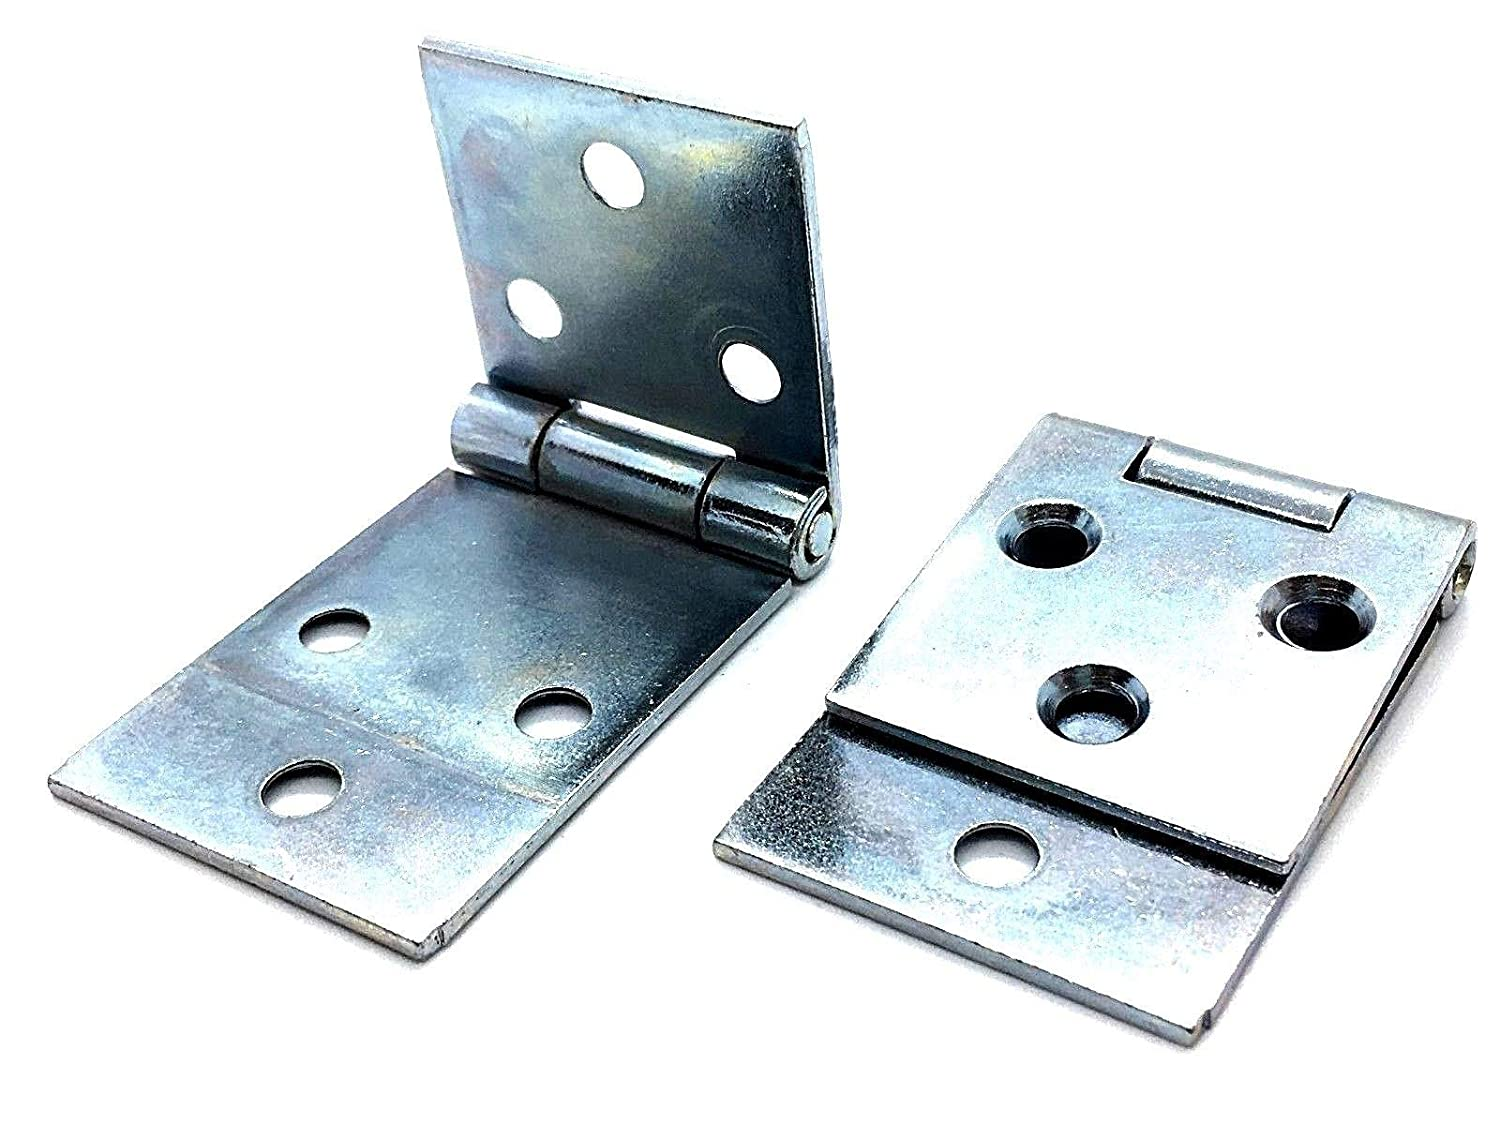 Set of A COUNTERFLAP Latch with 2 Back Flap Hinges PER Set Screws